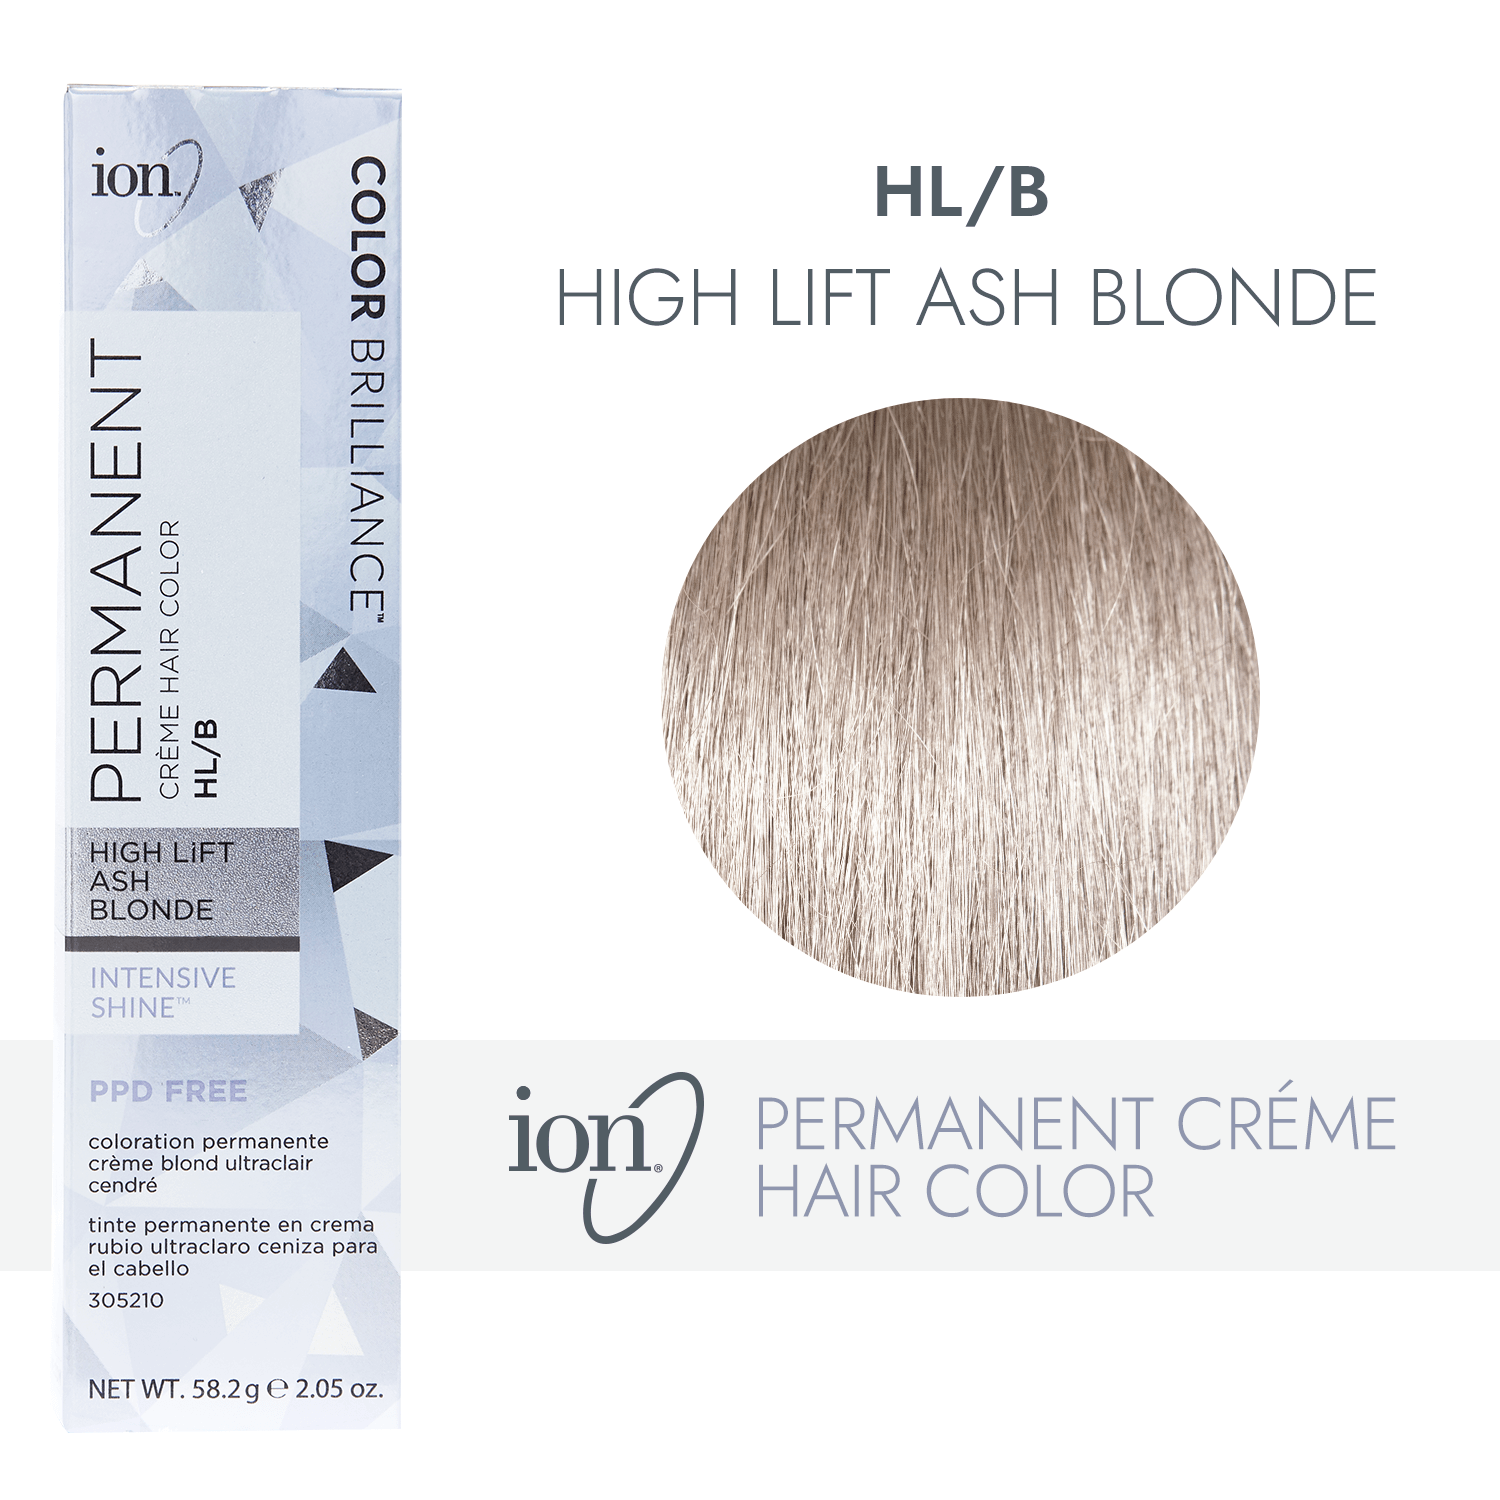 Ion Hl B Hi Lift Ash Blonde Permanent Creme Hair Color By Color